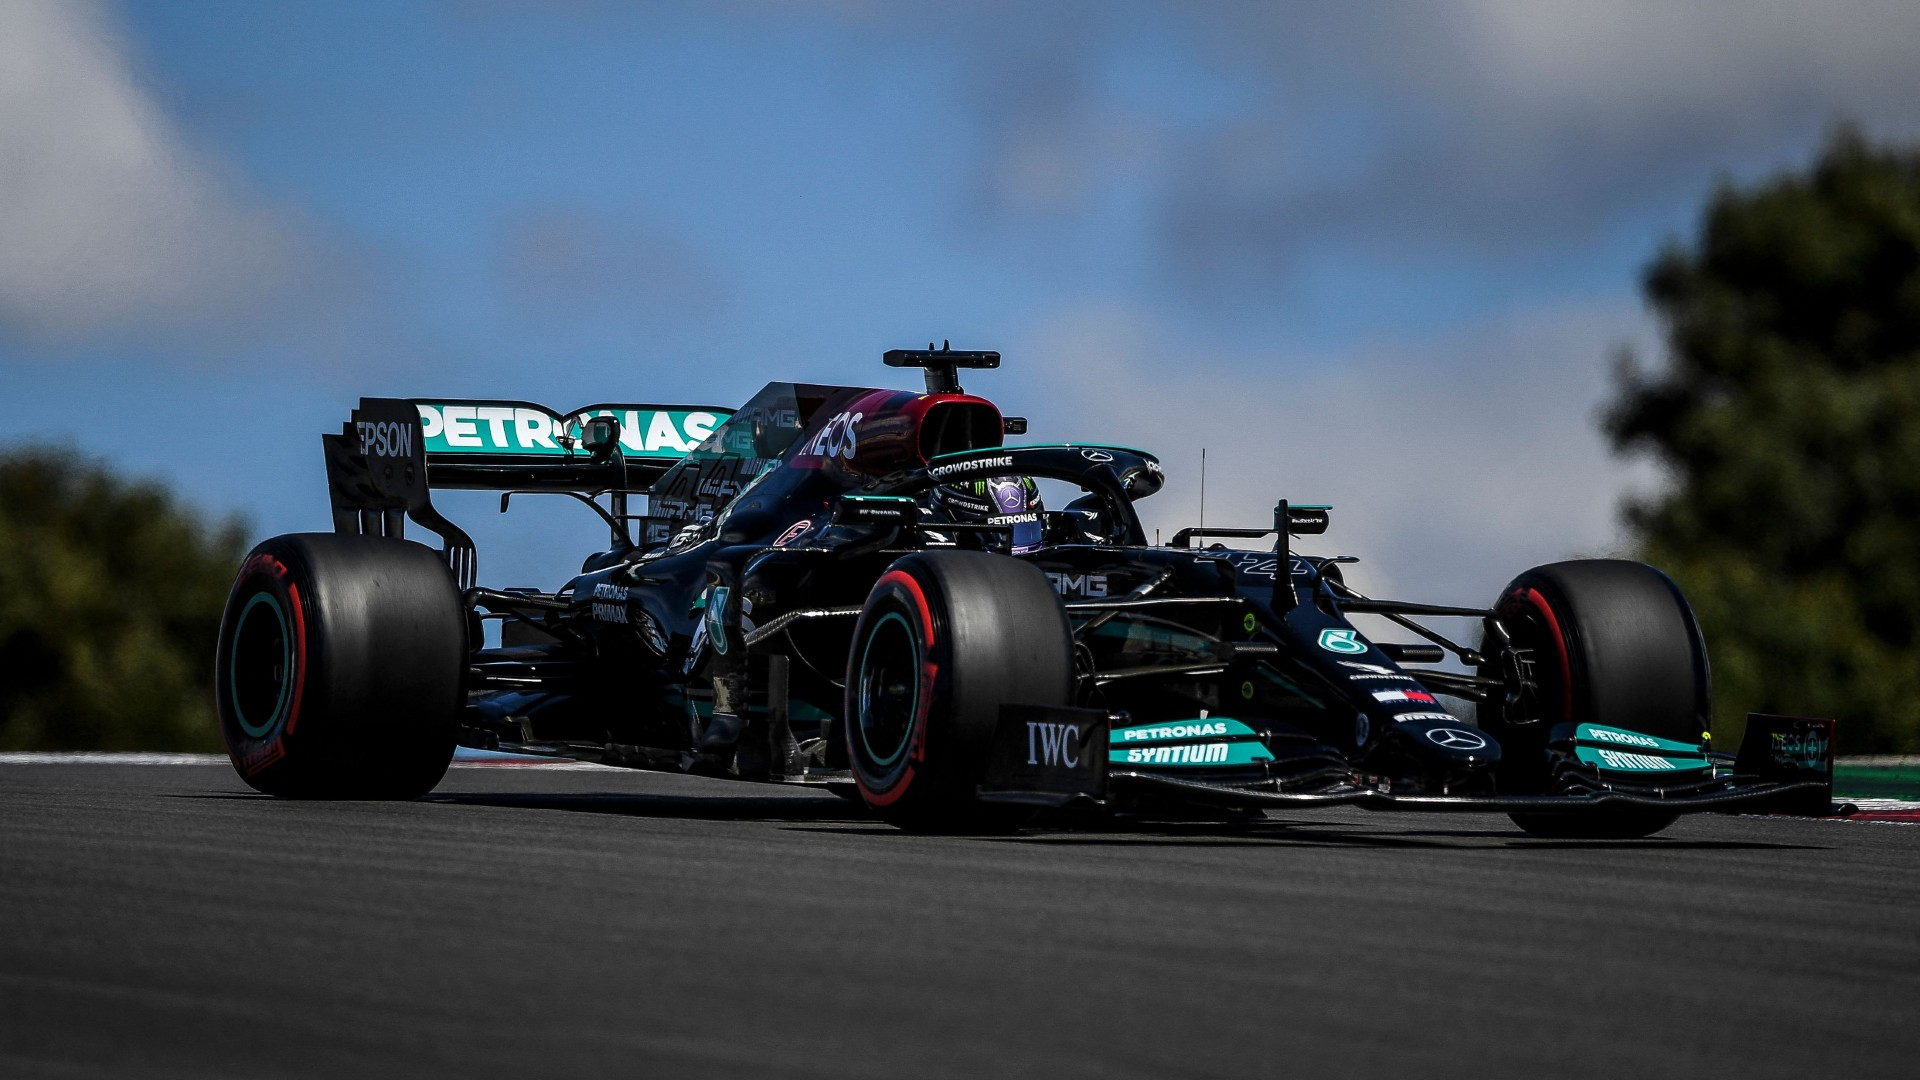 The 2021 f1 season will be the 72nd running of the formula 1 world championship. Formula 1 Qualifying Results Starting Grid For 2021 Portuguese Grand Prix Sporting News